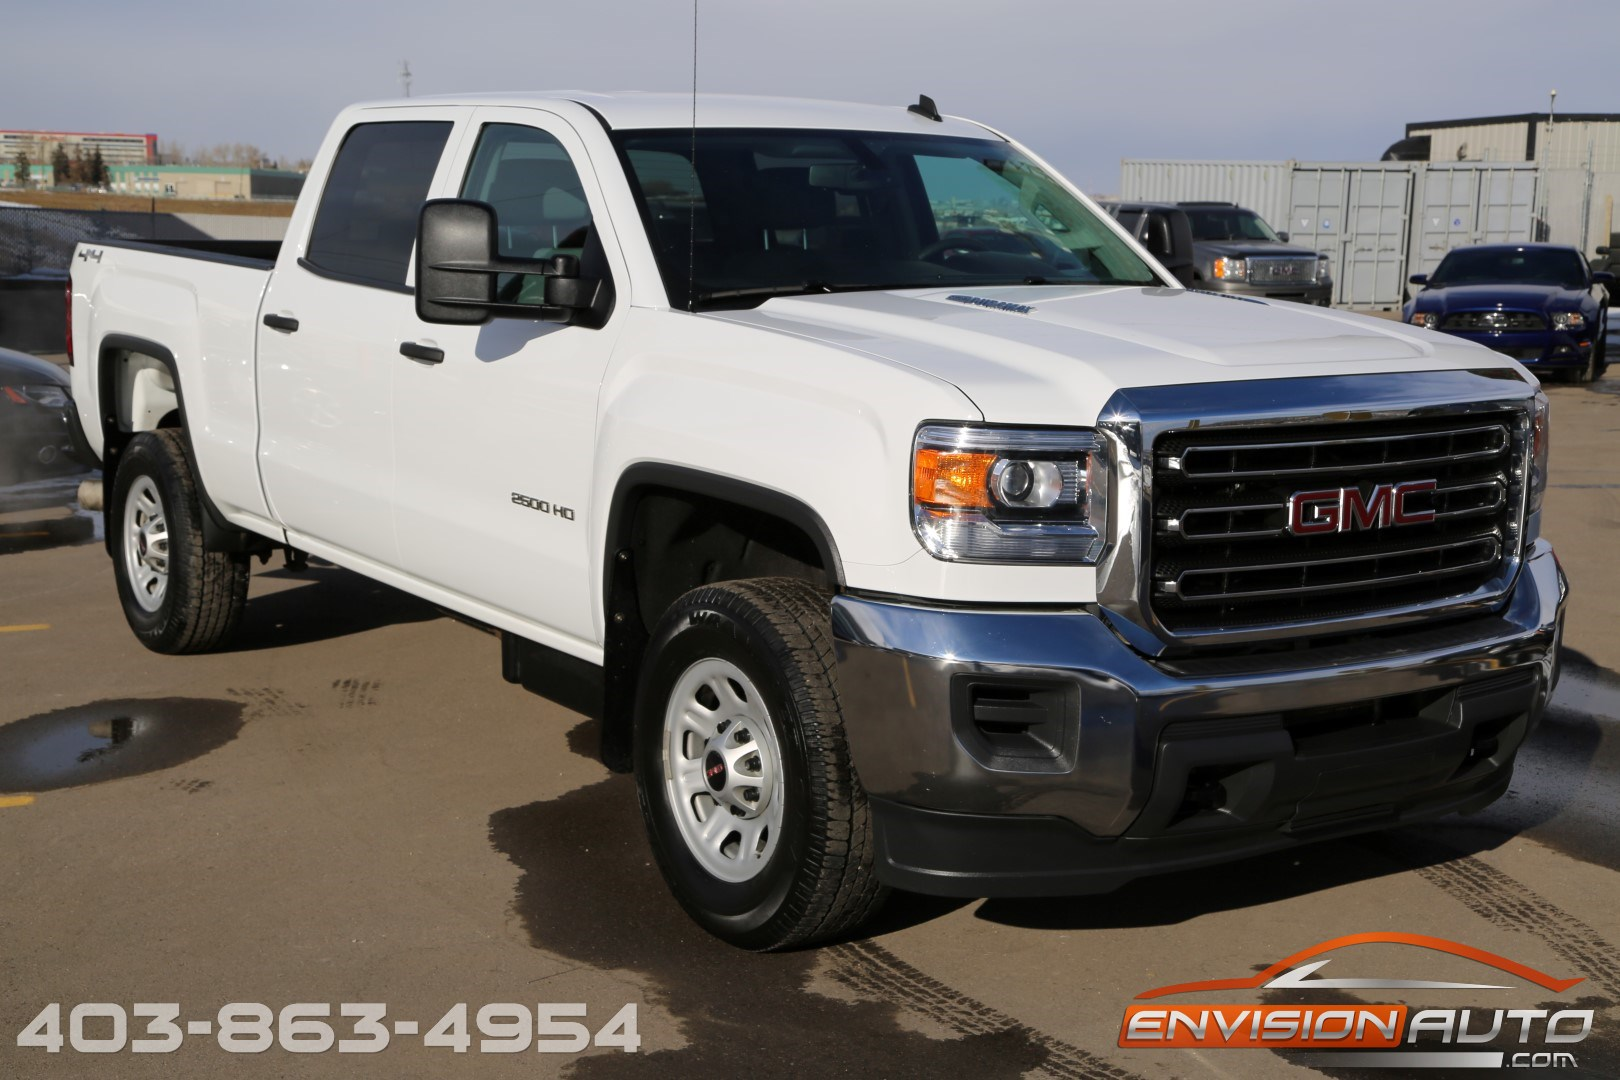 2015 gmc sierra 2500hd crew 4 4 6 6l duramax envision auto. Black Bedroom Furniture Sets. Home Design Ideas